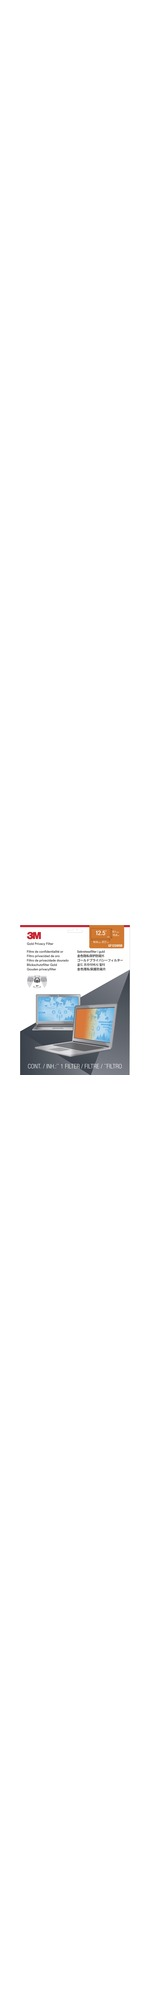 3M Privacy Screen Filter - Gold - For 31.8 cm 12.5And#34; Widescreen Notebook - 16:9 - Dust Resistant, Scratch Resistant